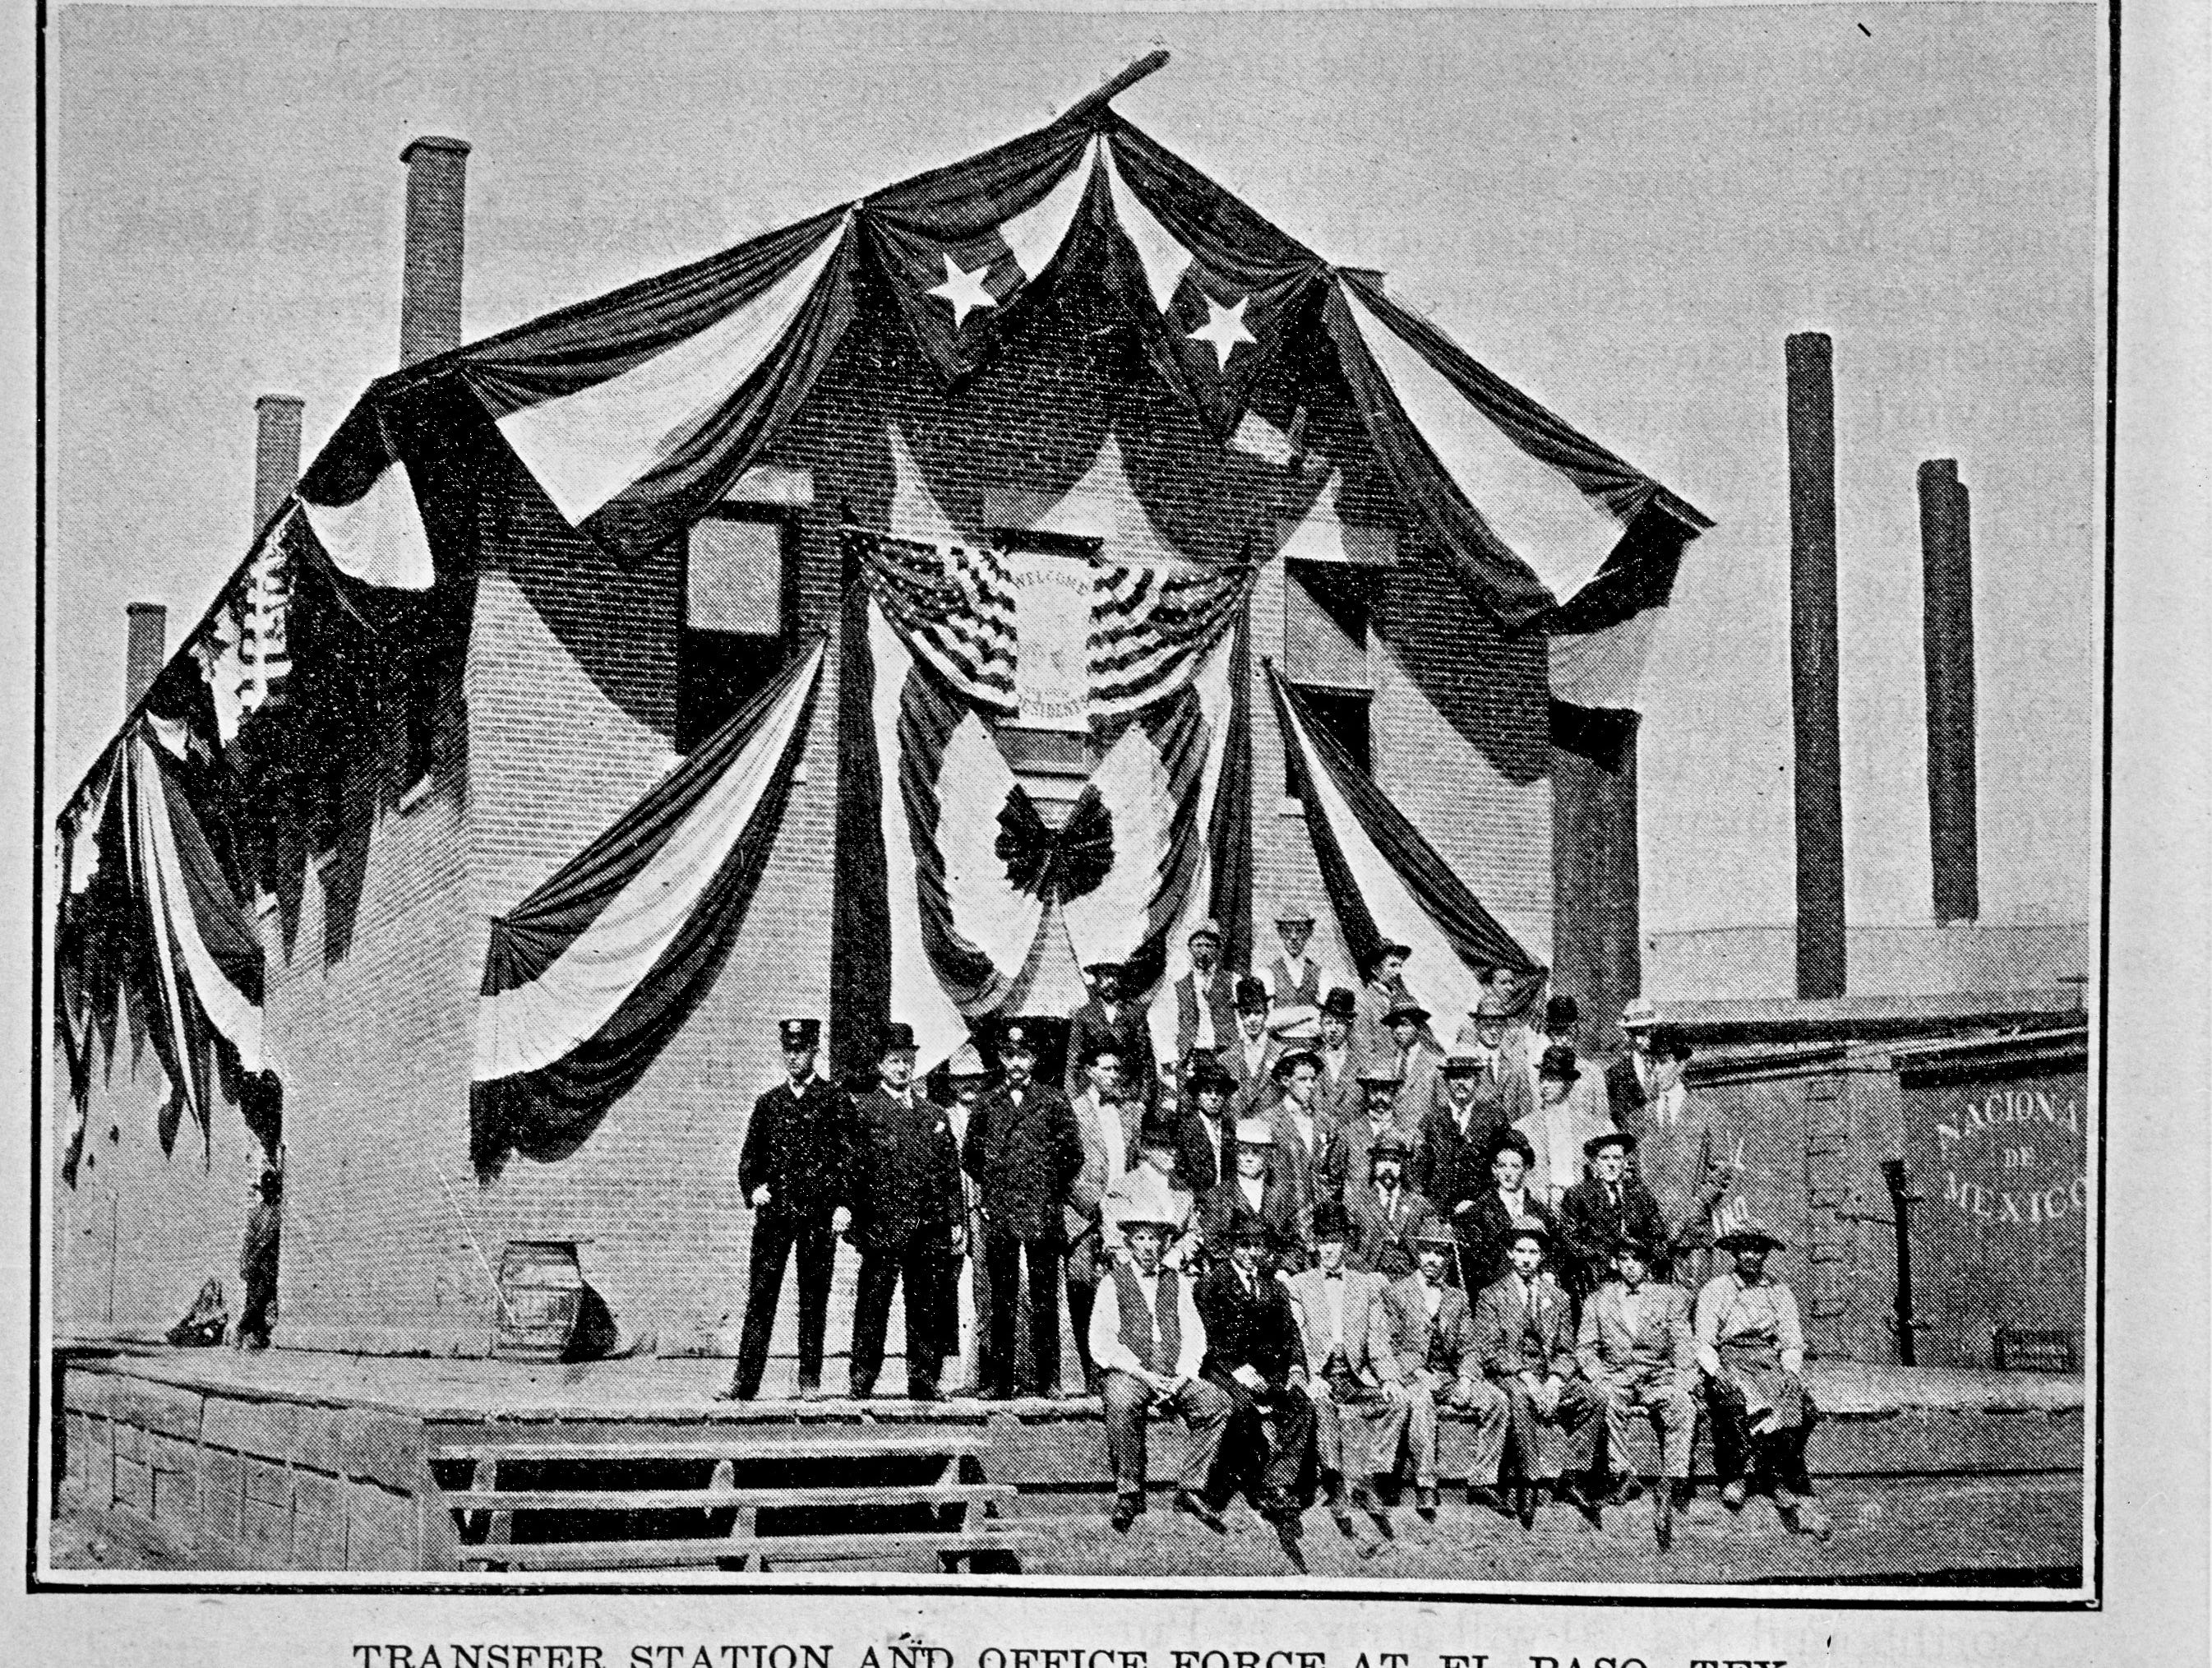 Oct. 16, 1909, was a big day for El Paso as President Porfirio Diaz of Mexico set foot on U.S. soil for the first time as president and U.S. President William Howard Taft met him here. Also historic was Taft's visit to Juarez, as it marked the first time a U.S. president had left the country while in office. Pictured on that occasion at the Santa Fe transfer station were these members of the transfer station and office force.